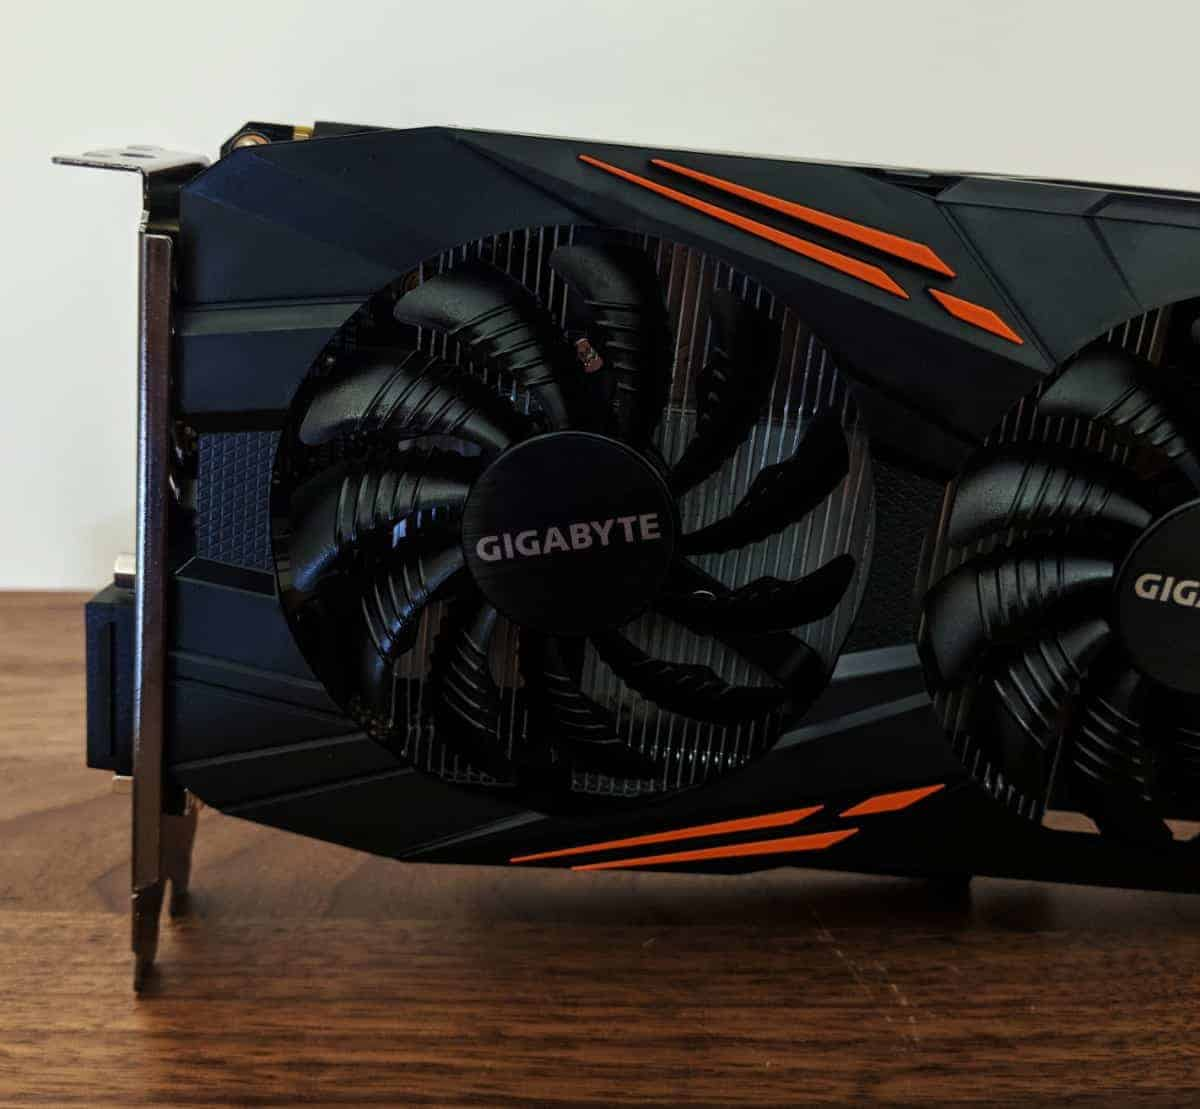 Gigabyte-GTX1080-G1-Photos-22 Gigabyte GTX1080 G1 Gaming Review